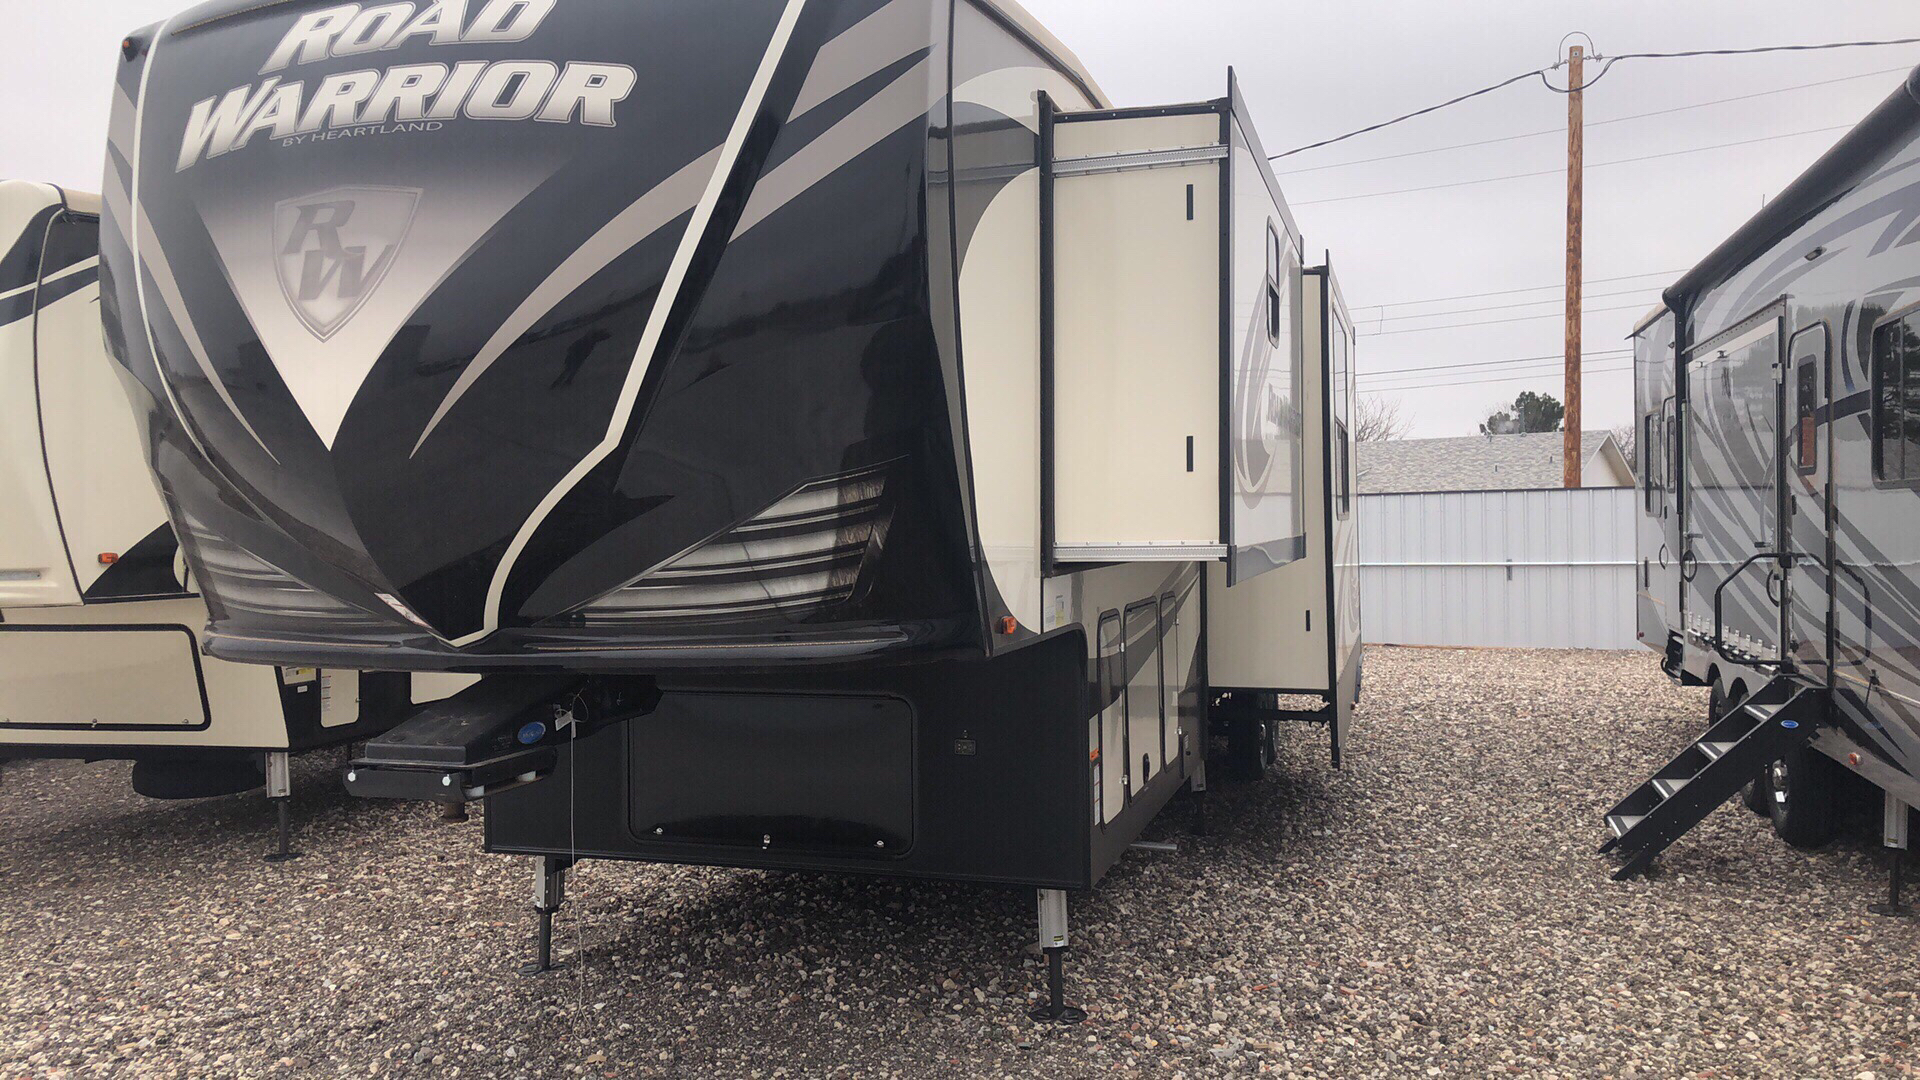 2019 Heartland Rvs RW 387 in Wolfforth, Texas - Photo 1